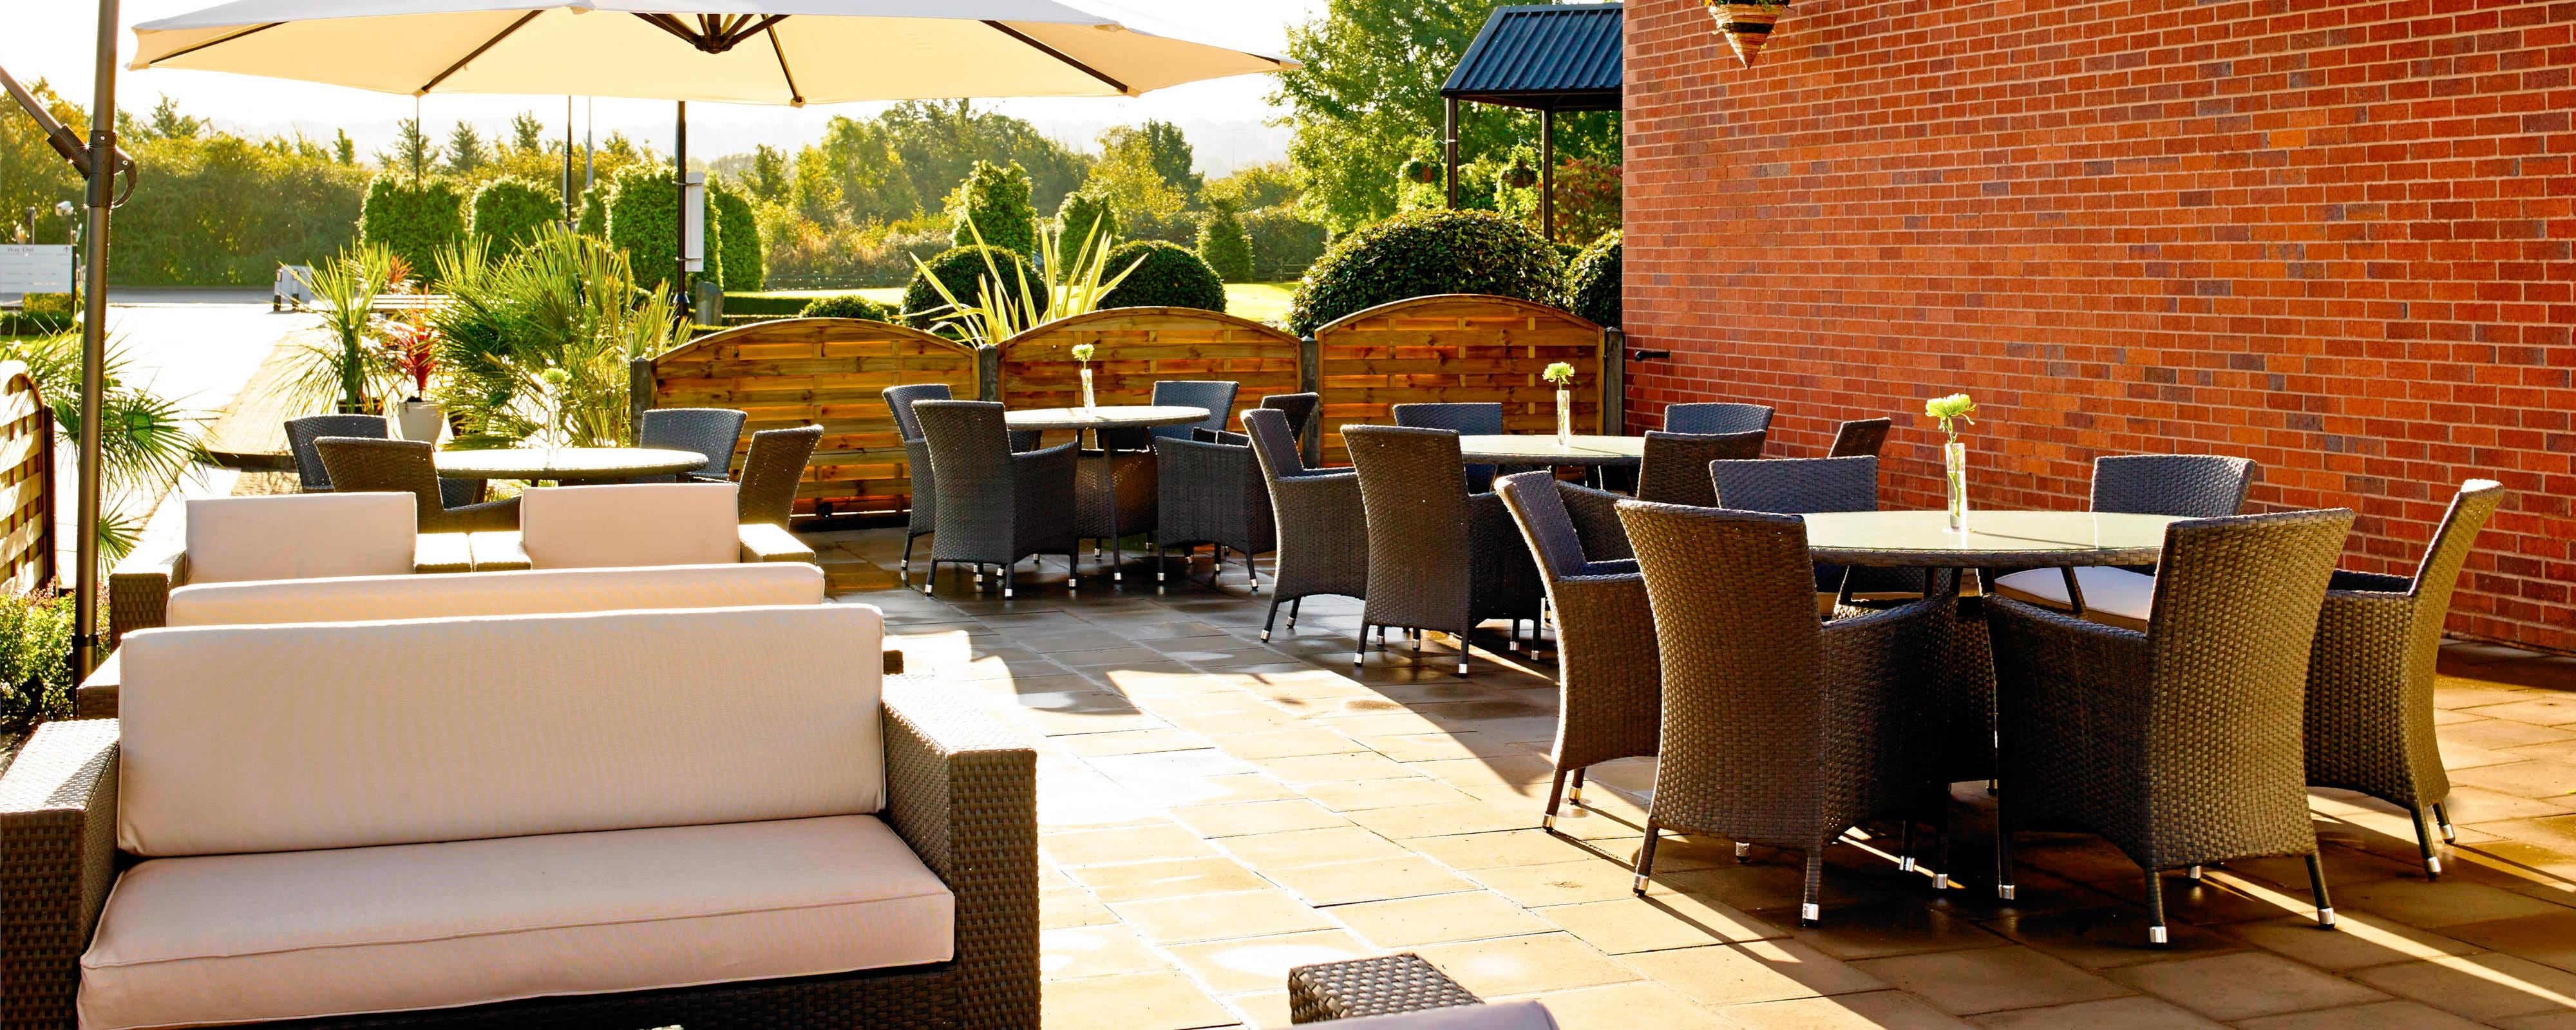 Patio exterior del Waltham Abbey Marriott Hotel